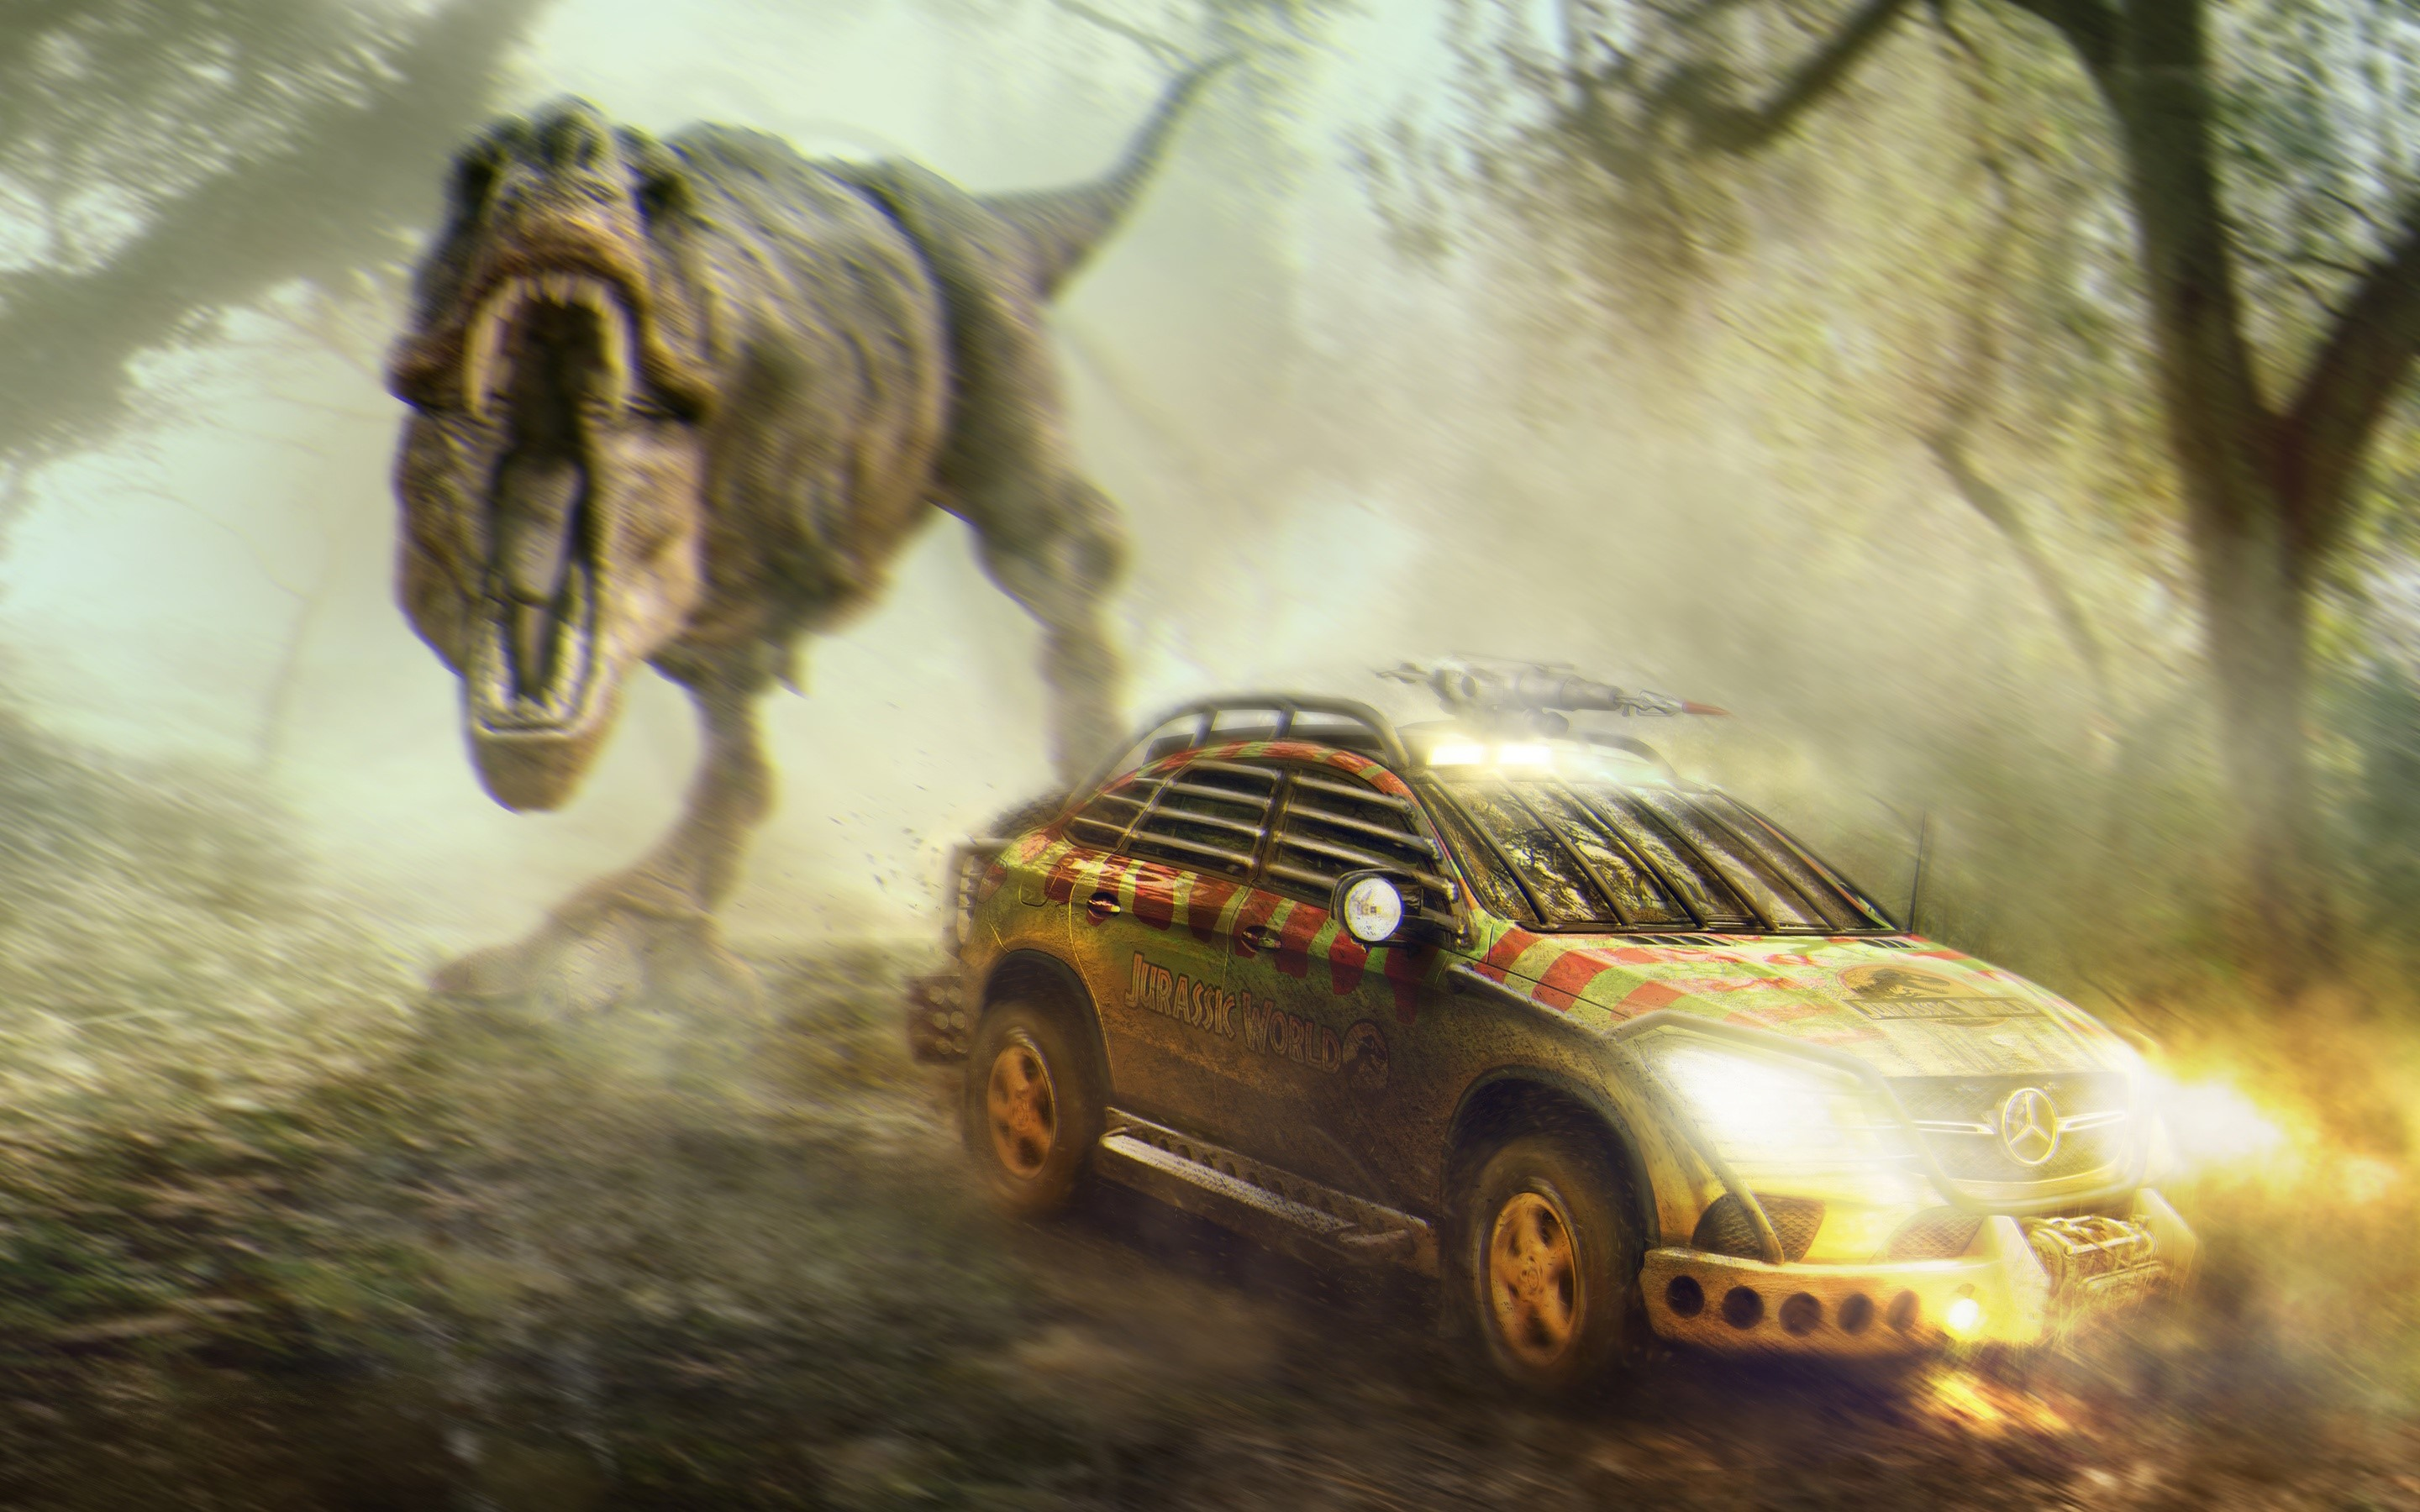 Wallpaper Mercedes Benz GLE coupe from Jurassic World